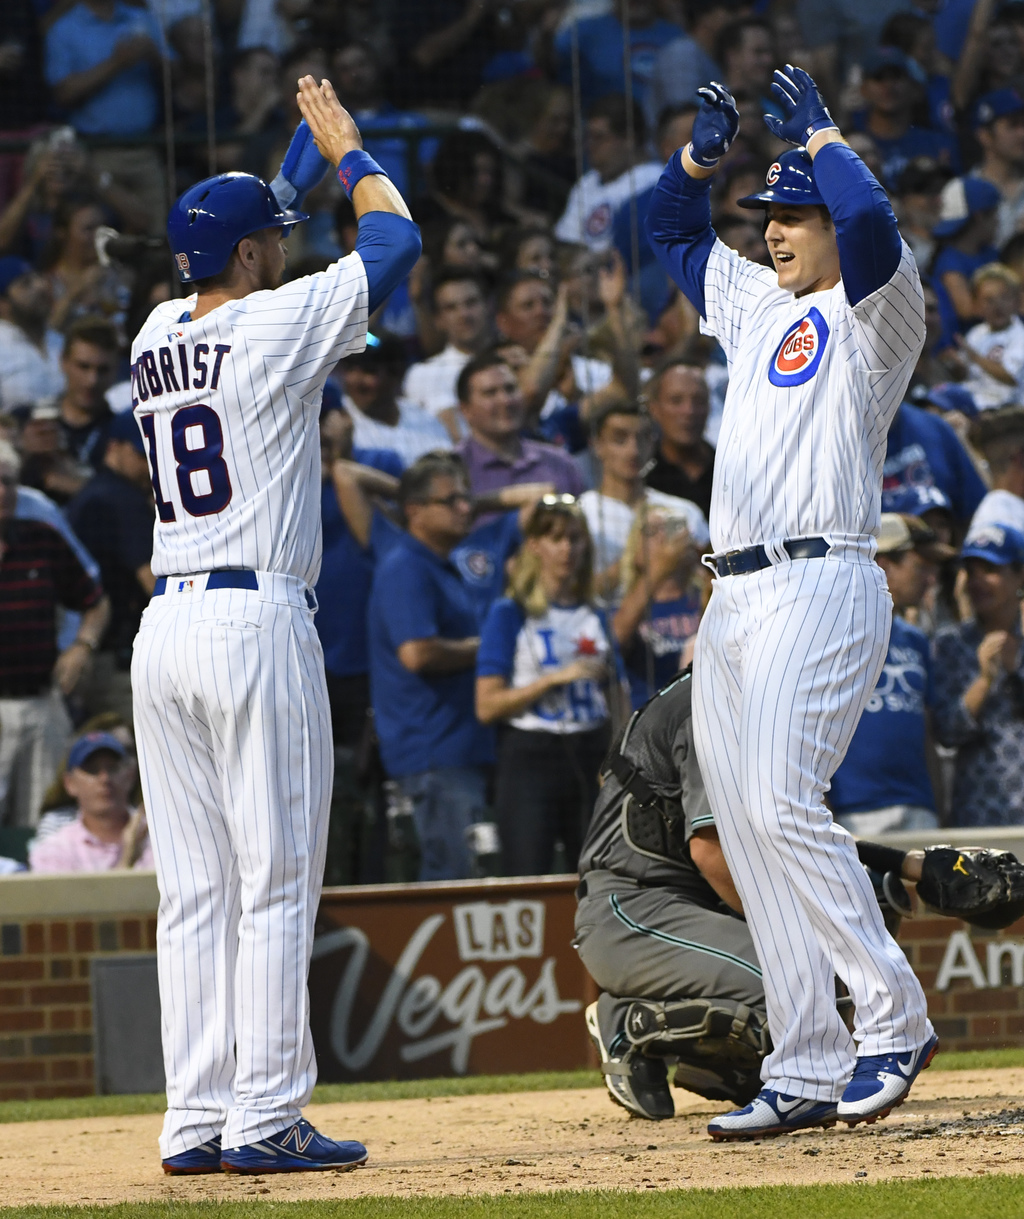 Chicago Cubs' Anthony Rizzo, right, high fives Ben Zobrist (18) after they score on his two-run home run during the second inning of a baseball game a...